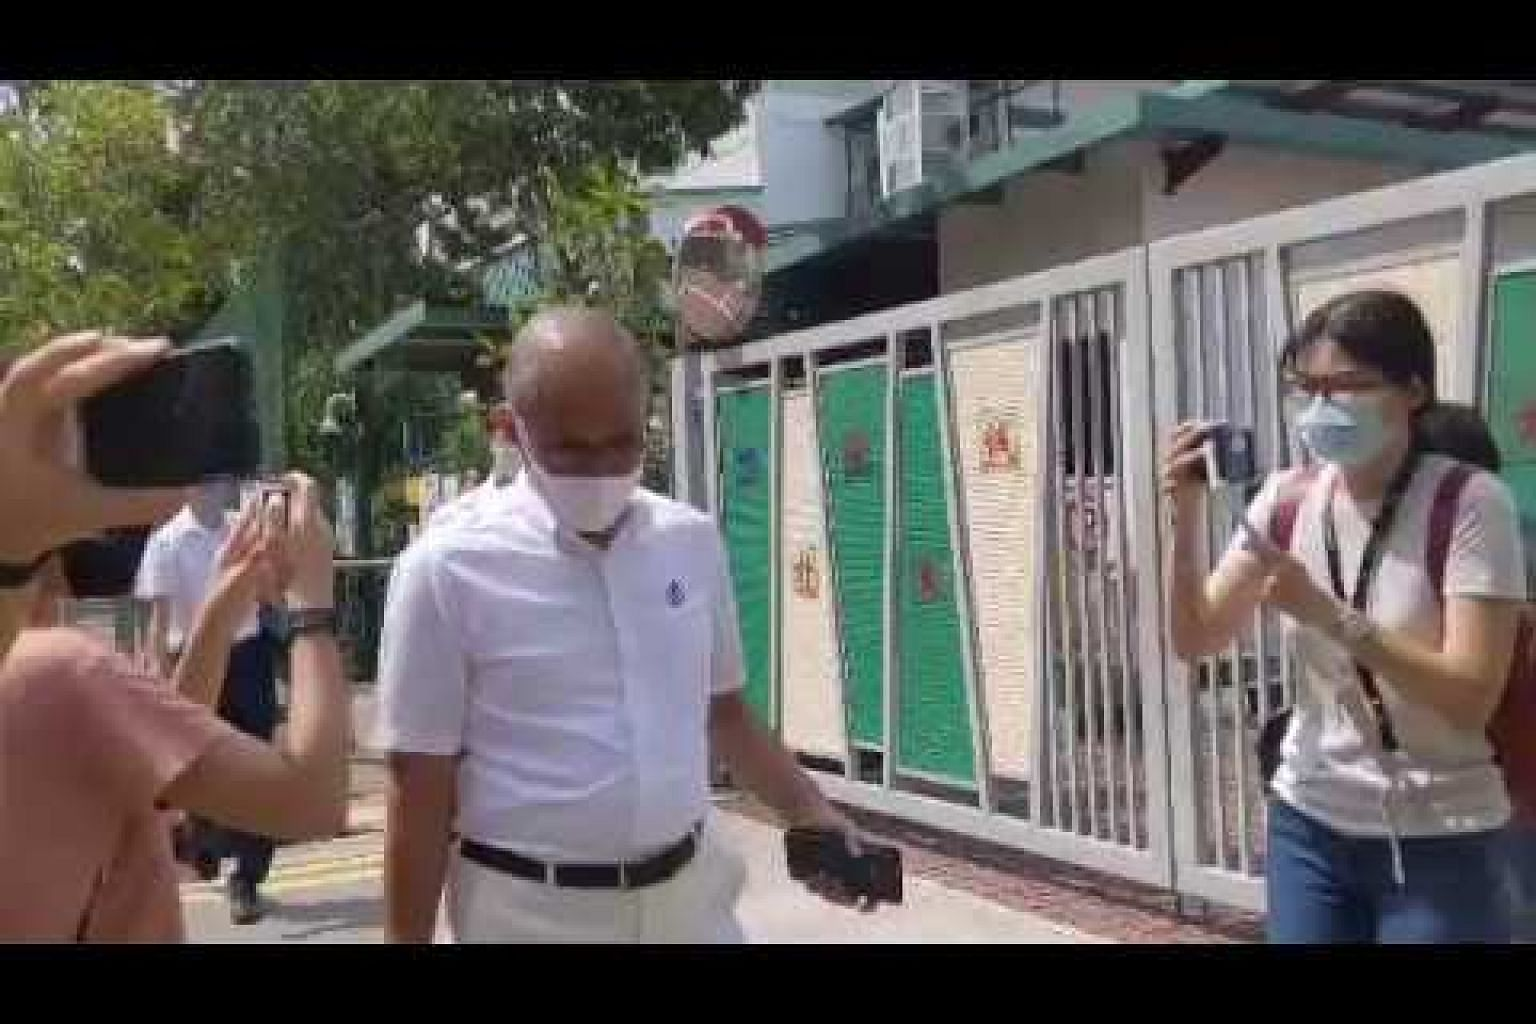 Incumbent Tampines GRC MP Masagos Zulkifli was seen with incumbent Ang Mo Kio GRC MP Koh Poh Koon.